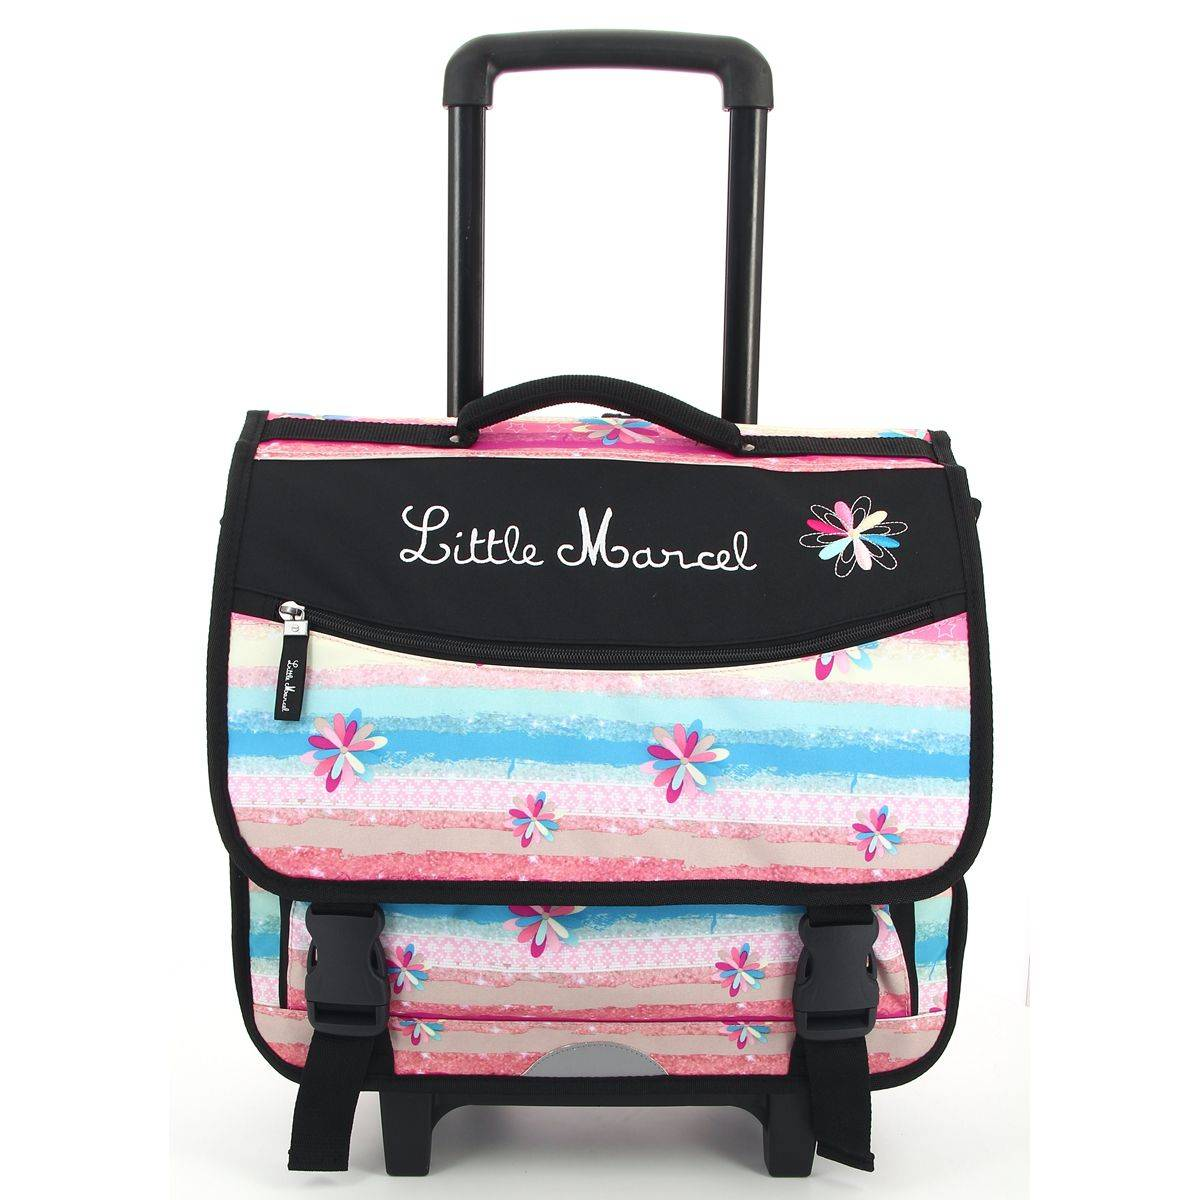 Little marcel cartable roulettes rachida enfant fermoir rachida - Code promo little marcel frais de port ...